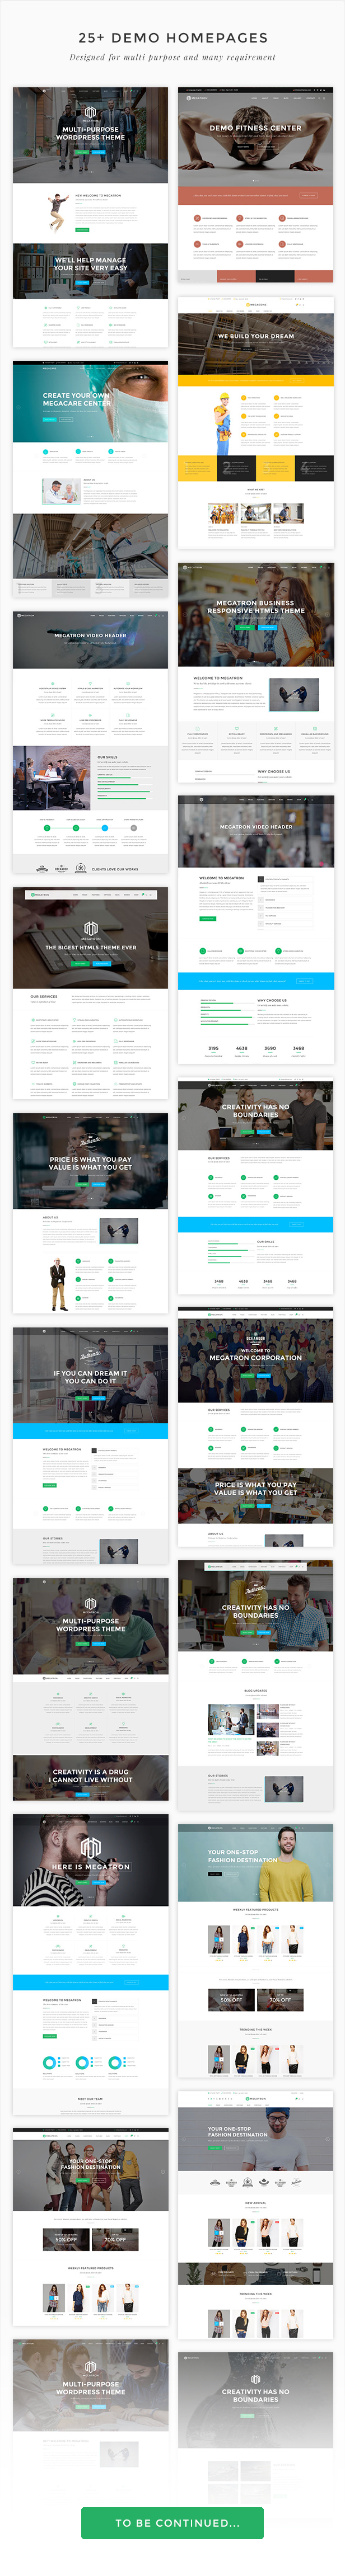 Megatron - Responsive MultiPurpose WordPress Theme - 4